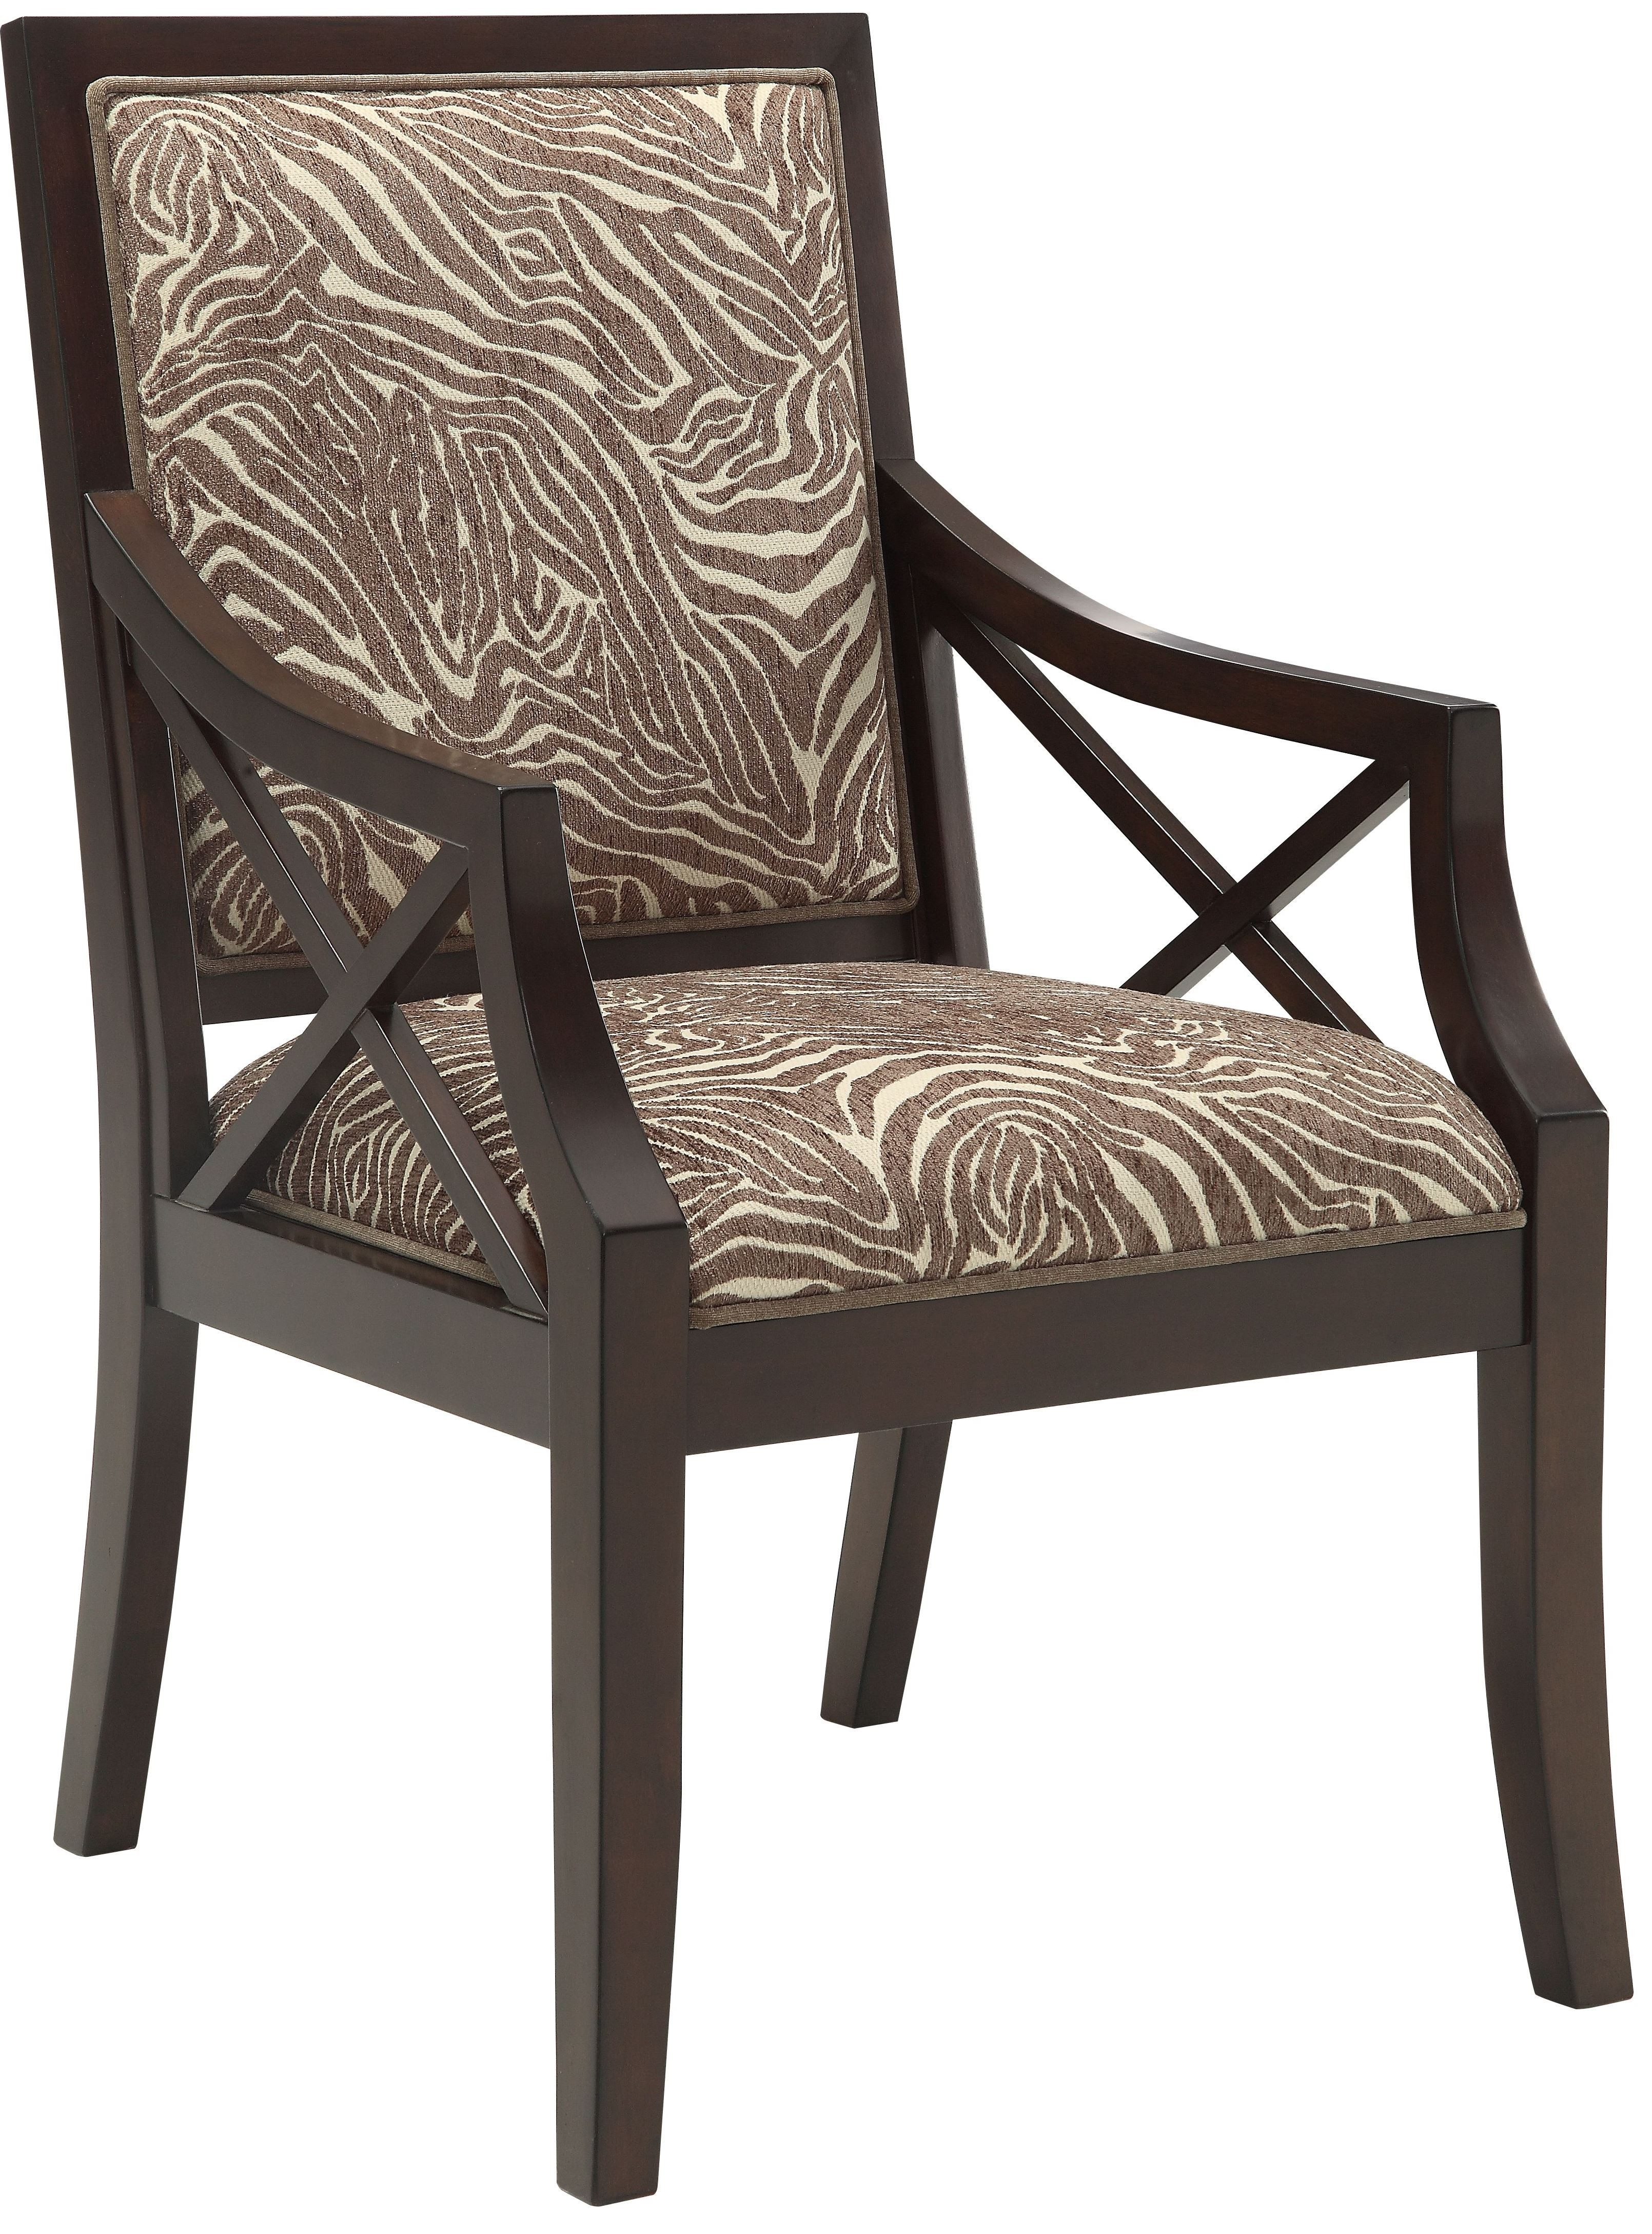 animal print accent chair cool chairs beige brown from coast to